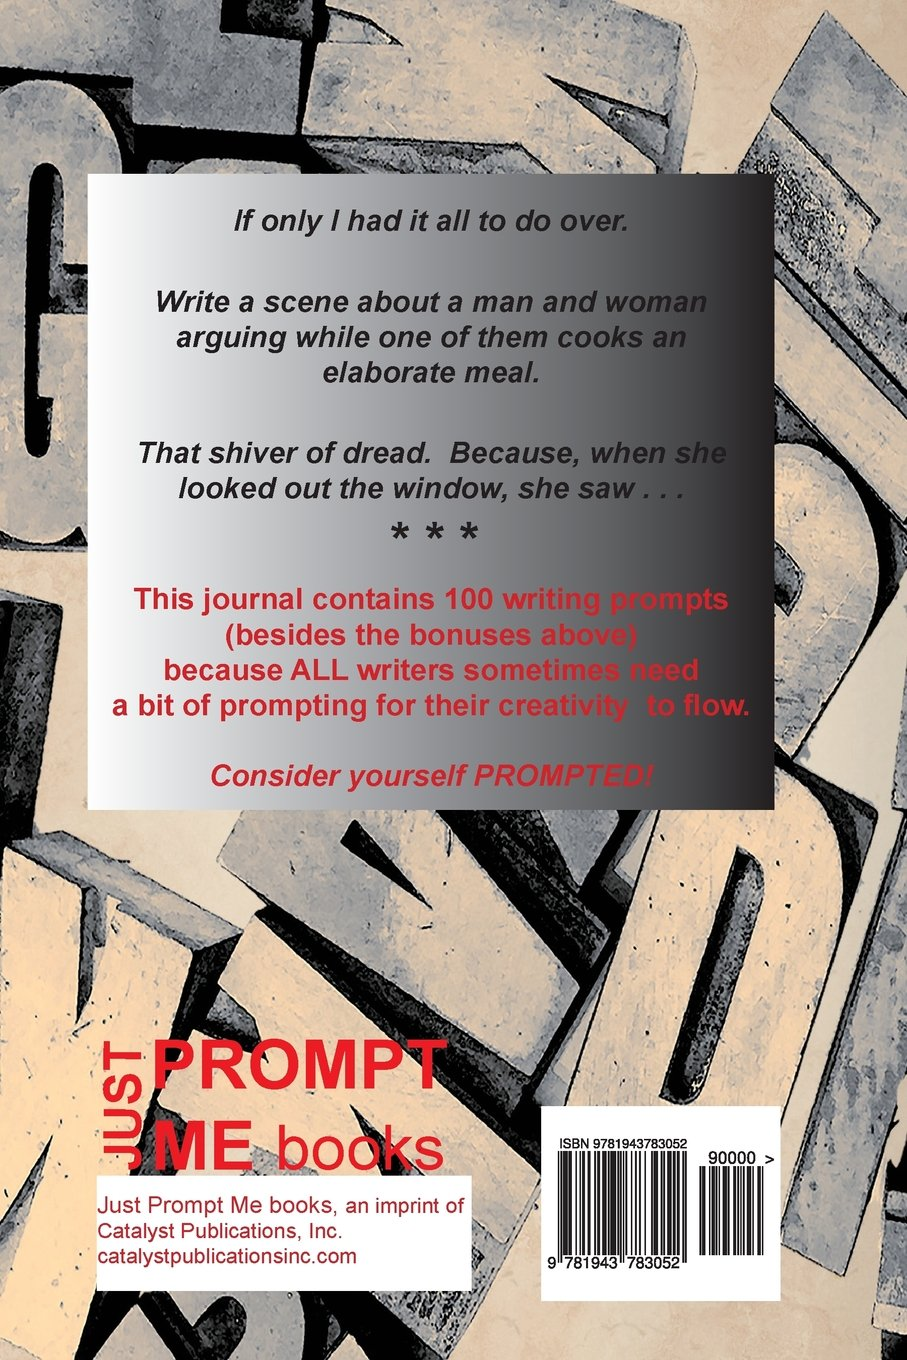 Just prompt me a writers journal with prompts just prompt me writers journal with prompts just prompt me writers journals volume 1 charlotte rains dixon nancy paulson fox 9781943783052 amazon books solutioingenieria Images